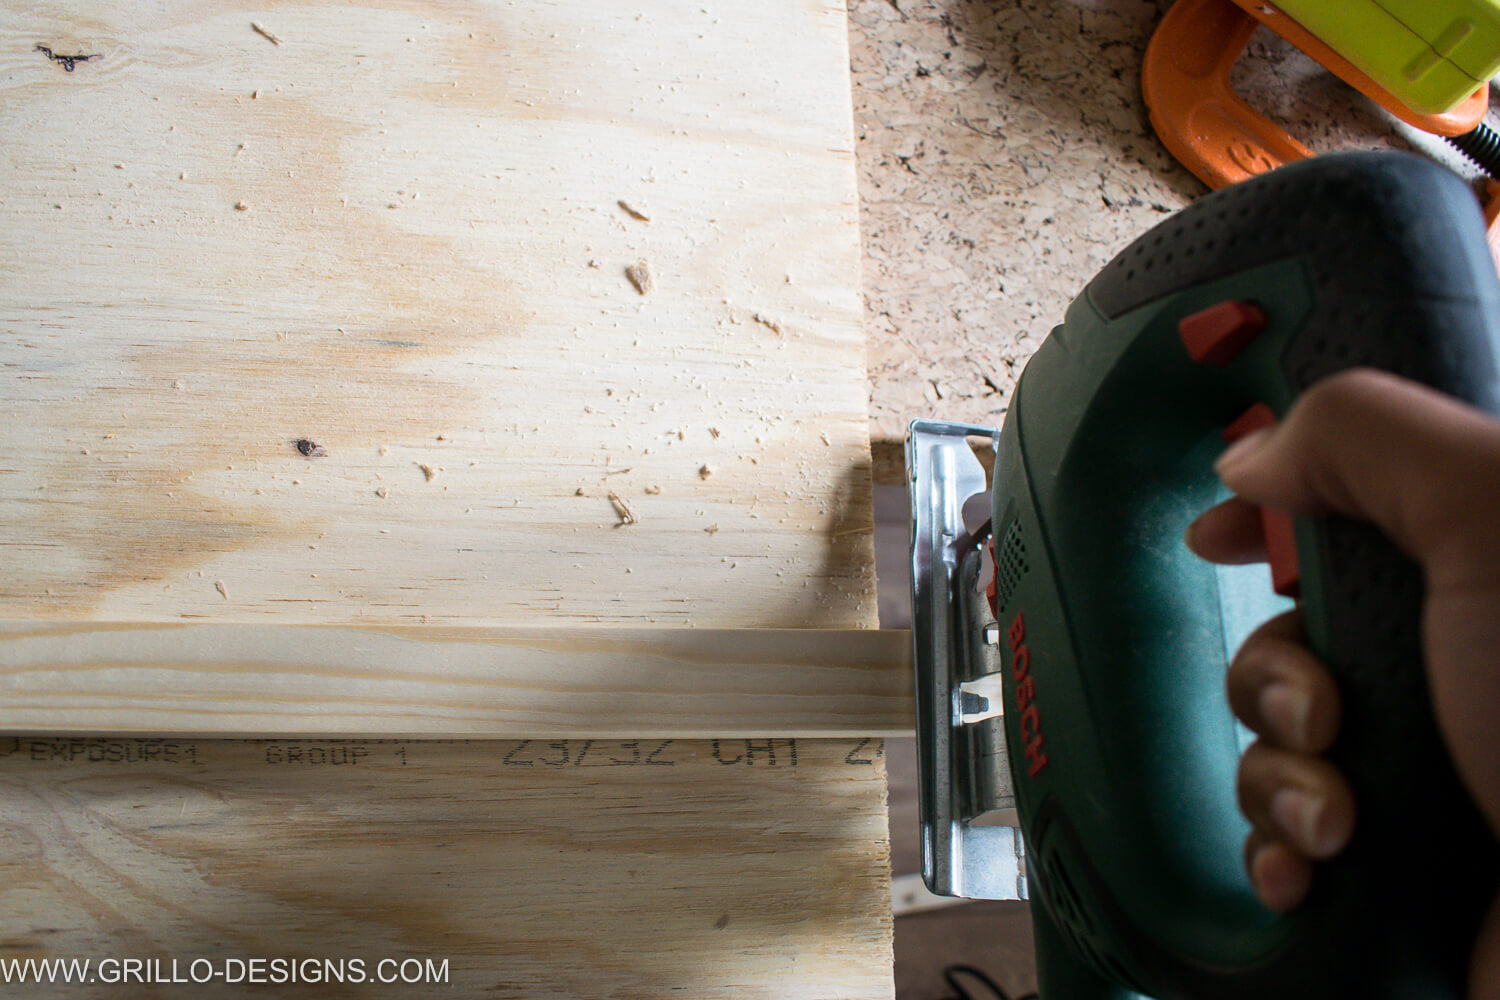 Use a jigsaw to cut softwood for zeroes and cross the board boundary